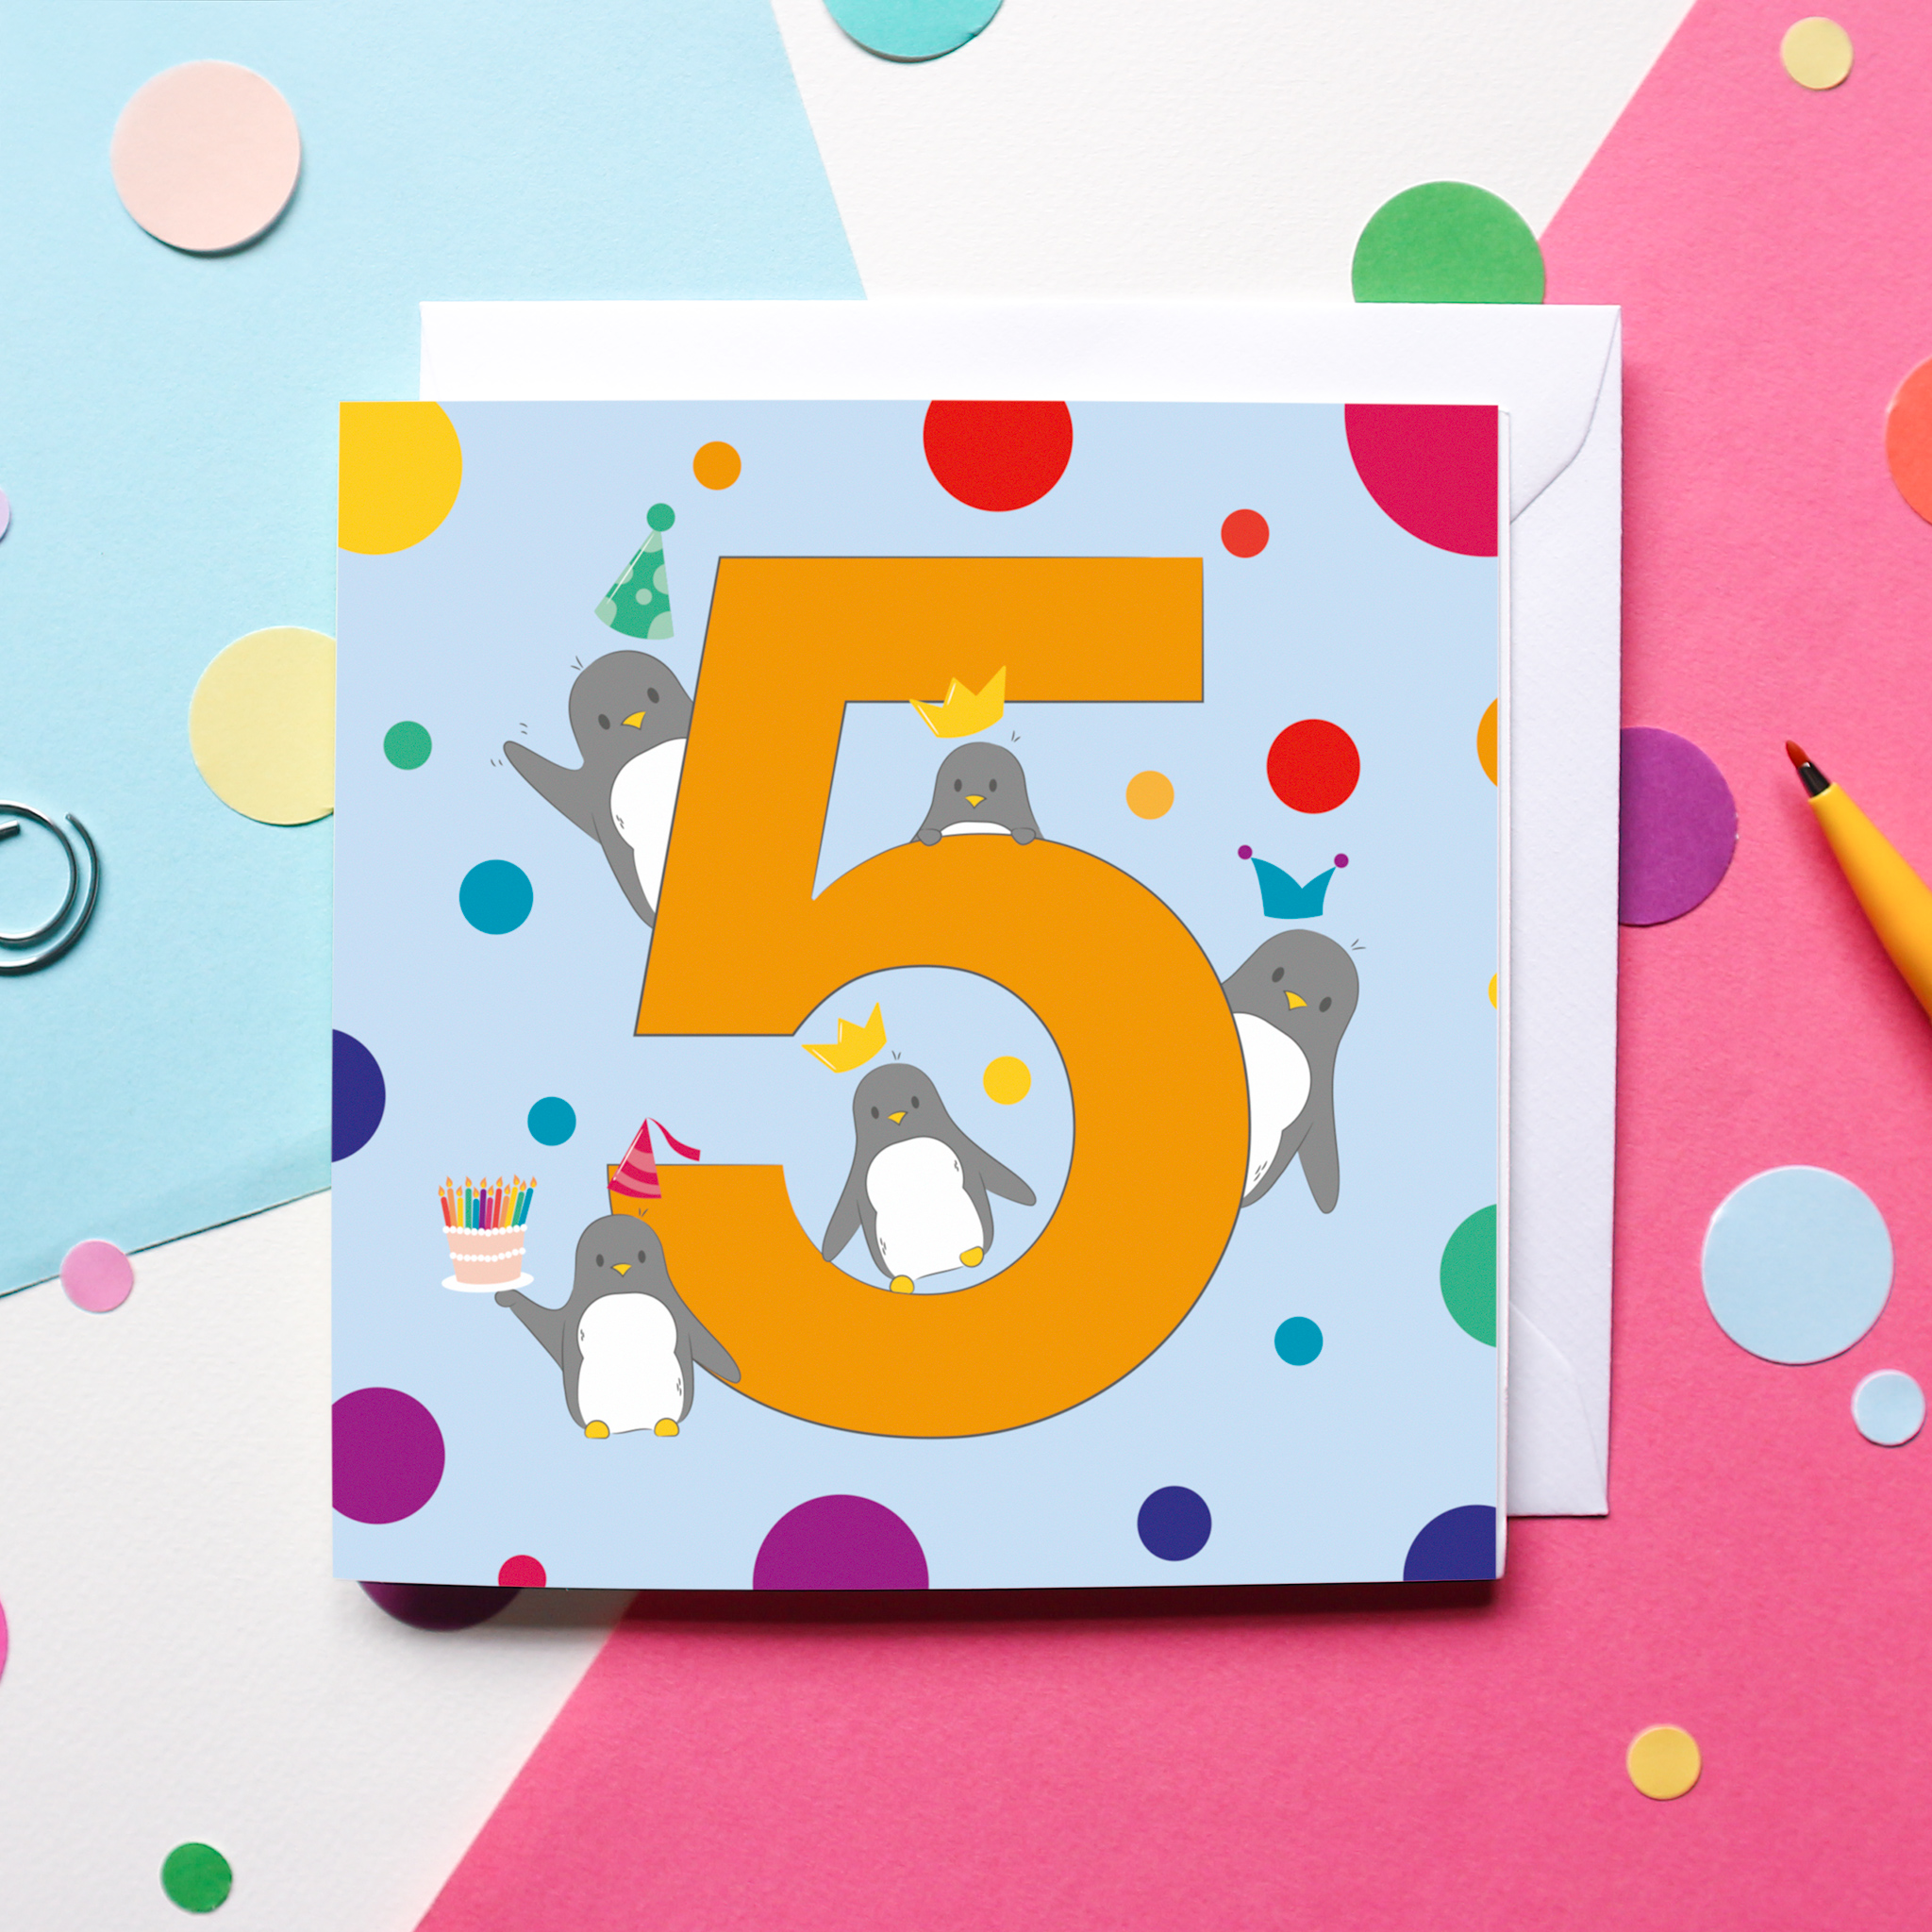 A Penguin-themed 5th Birthday Card on a colourful background surrounded by confetti and a pen.